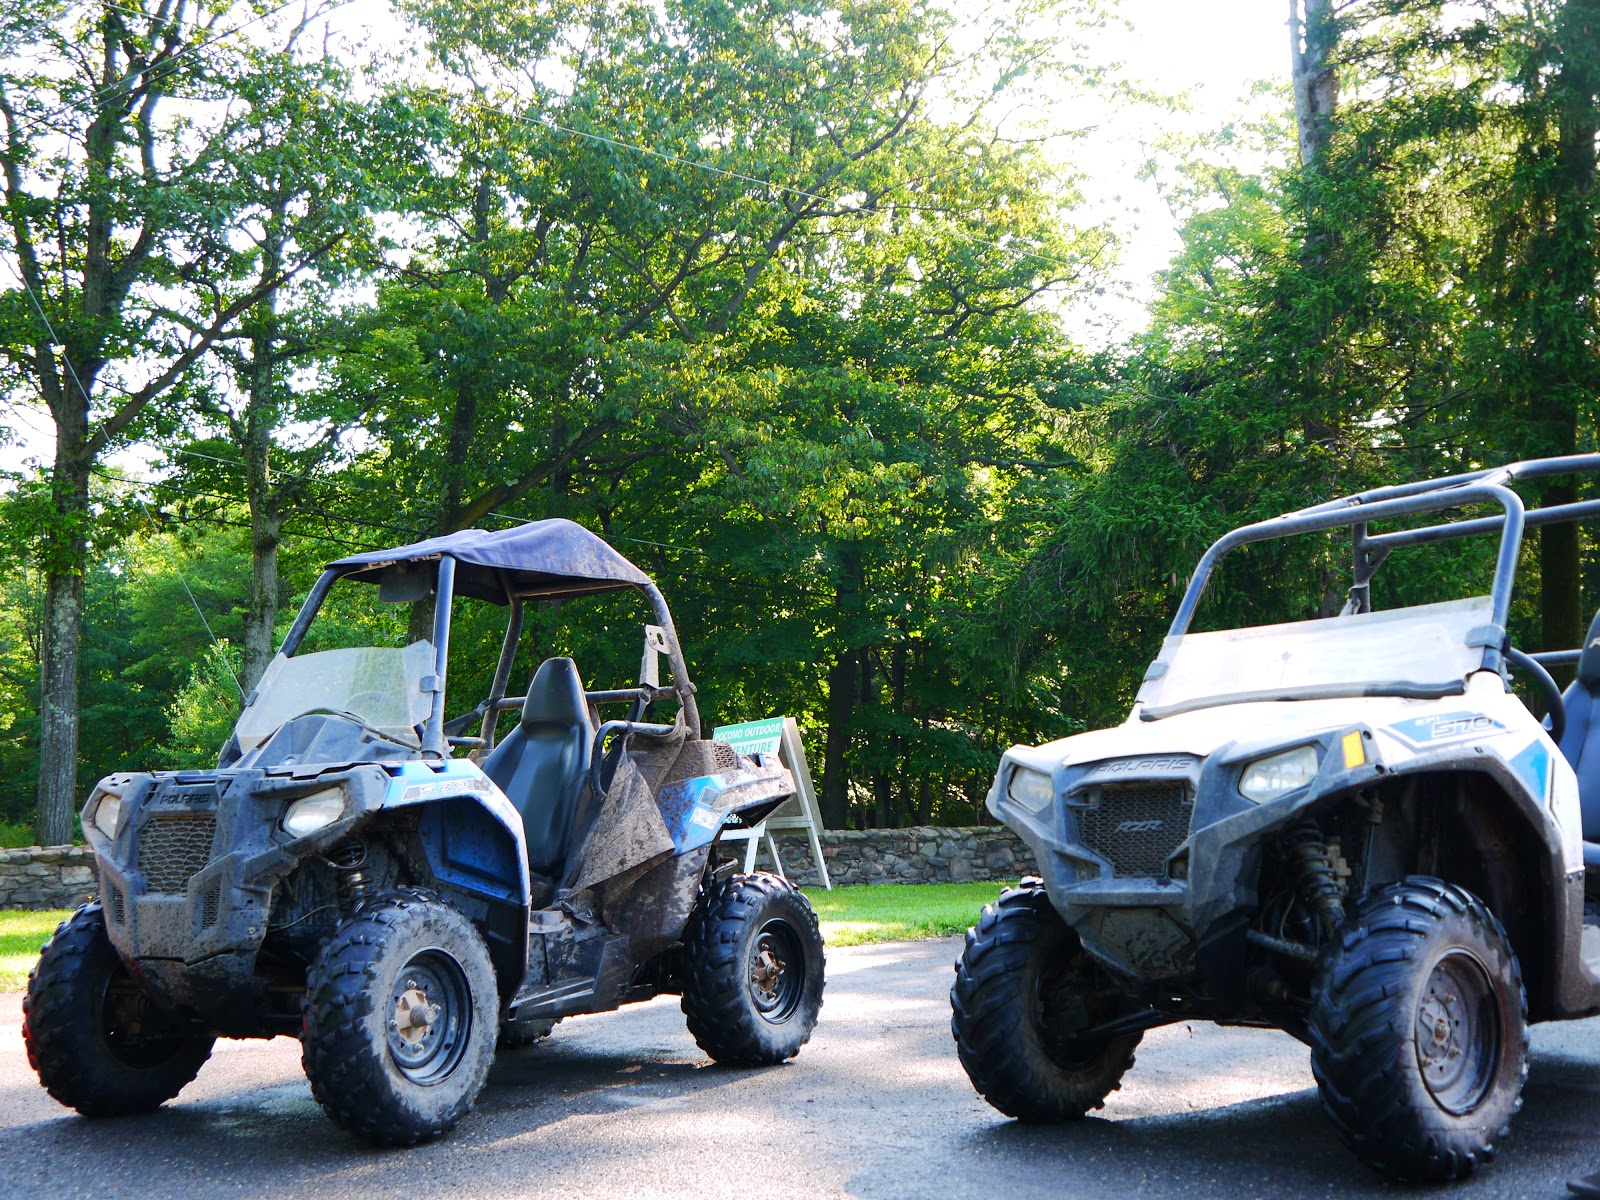 The Western New Yorker Weekend Adventure In The Pocono Mountains